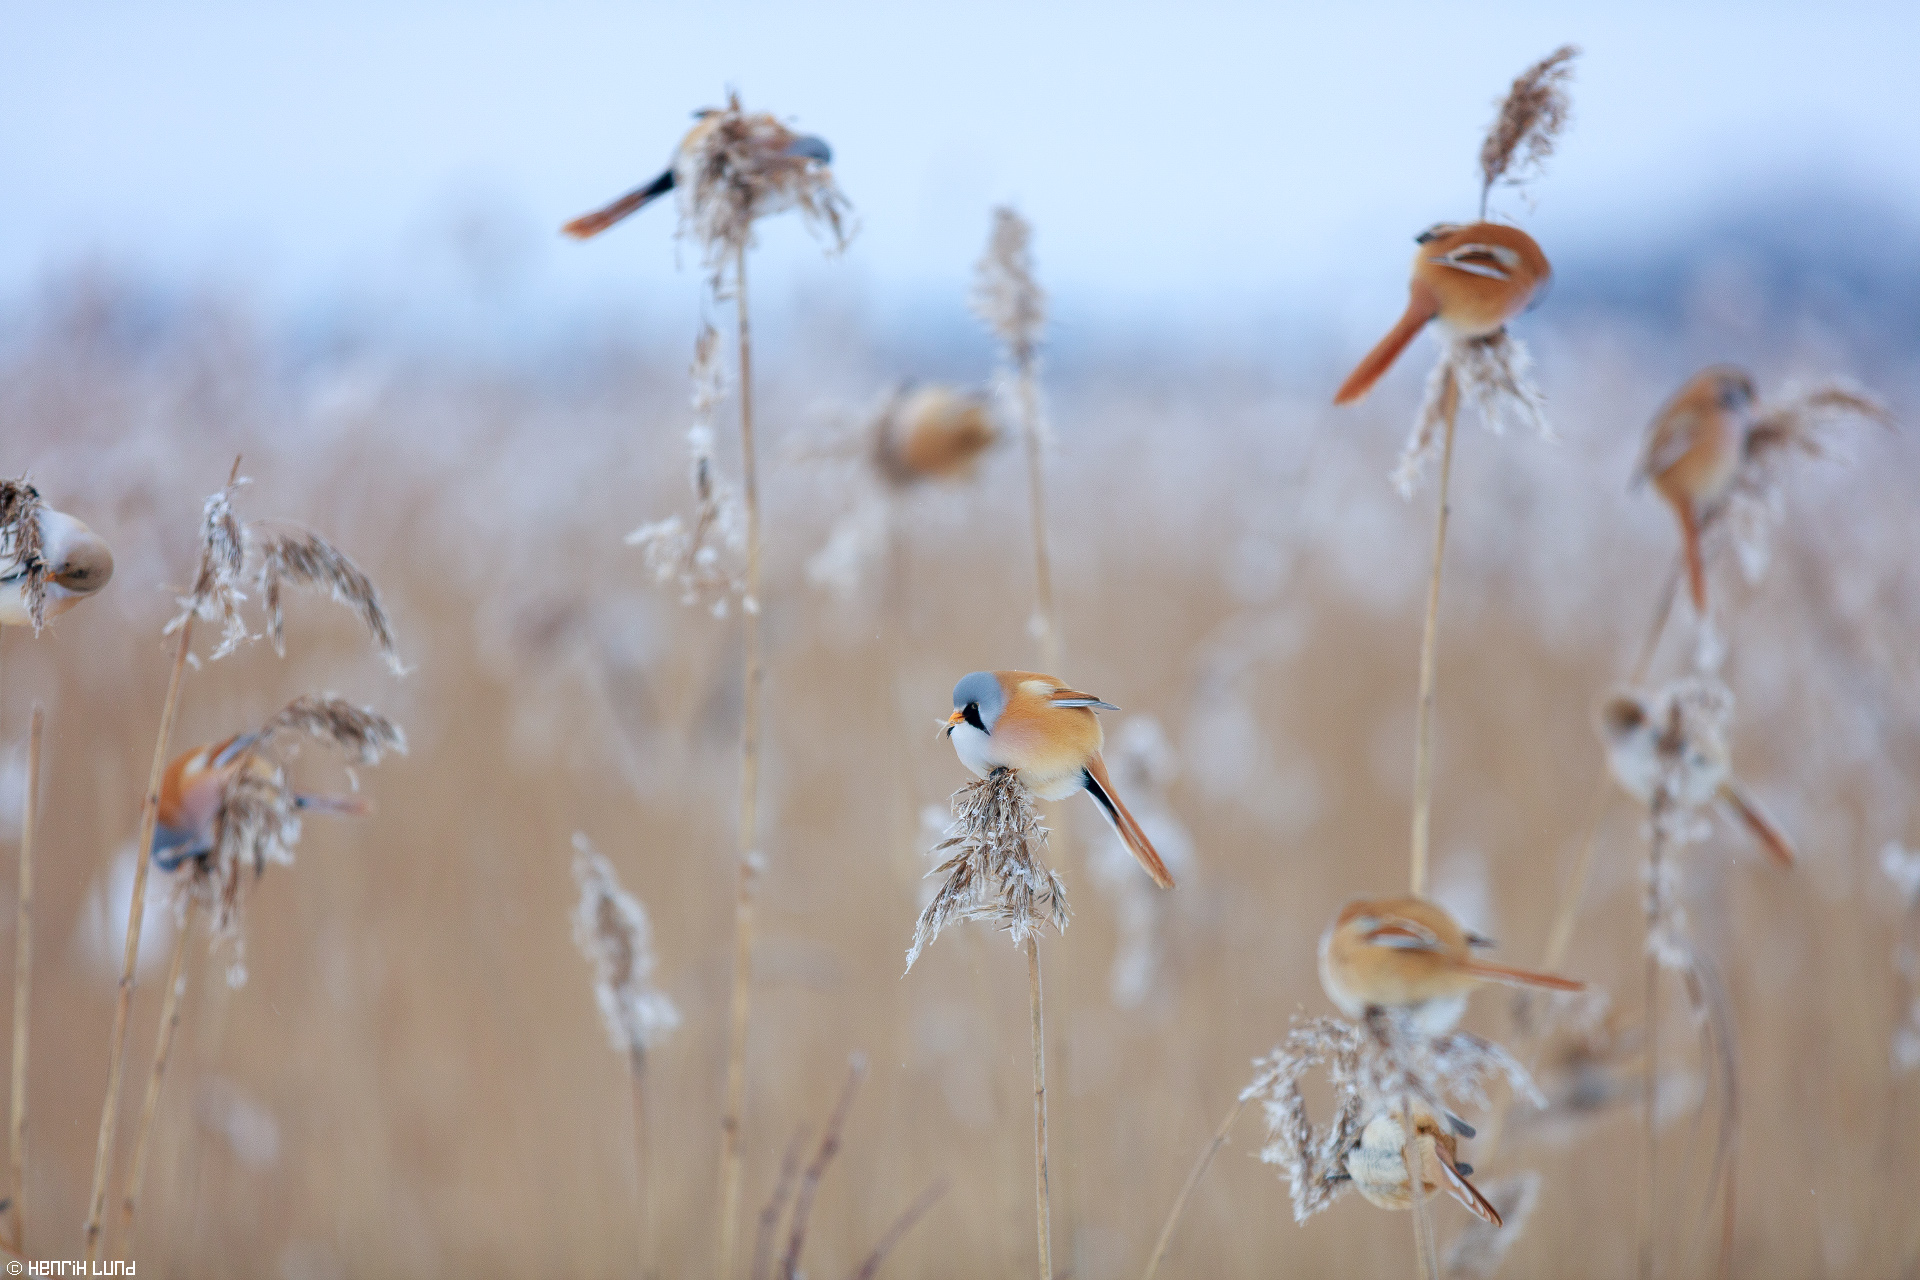 Bearded reedlings dining in the reeds. Svinö, Borgå, Finland. January 2016.